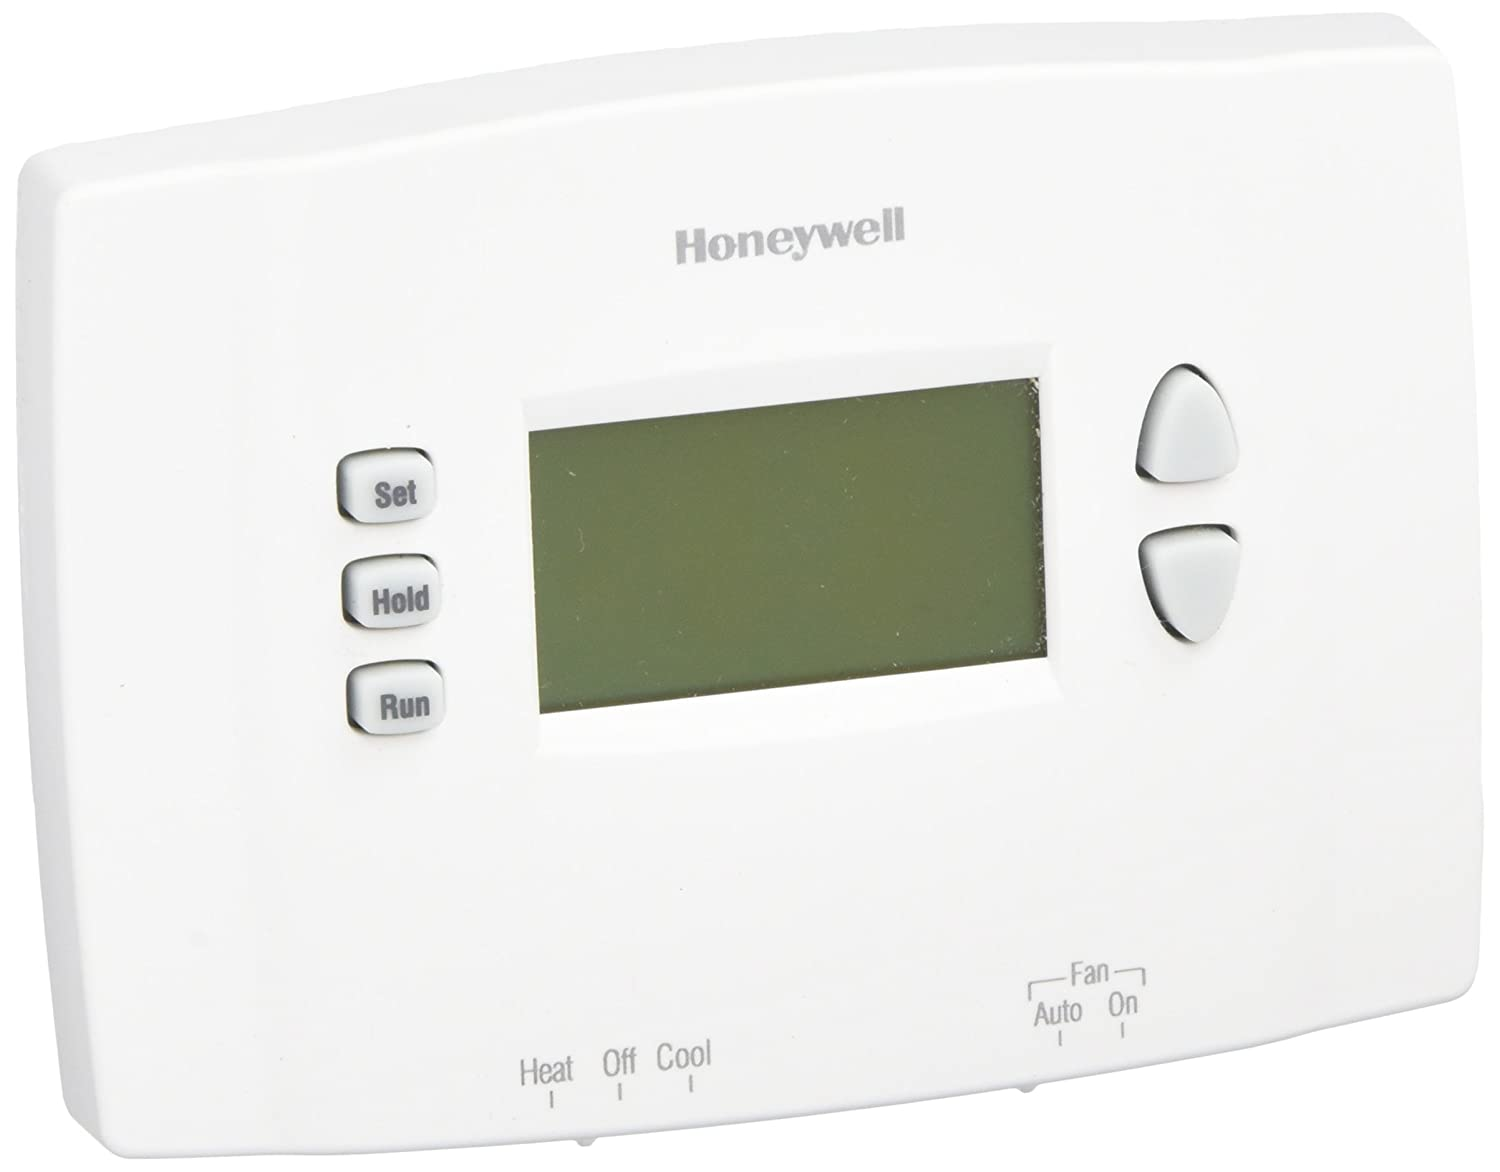 Honeywell 7-Day Programmable Thermostat (White) - Programmable Household  Thermostats - Amazon.com